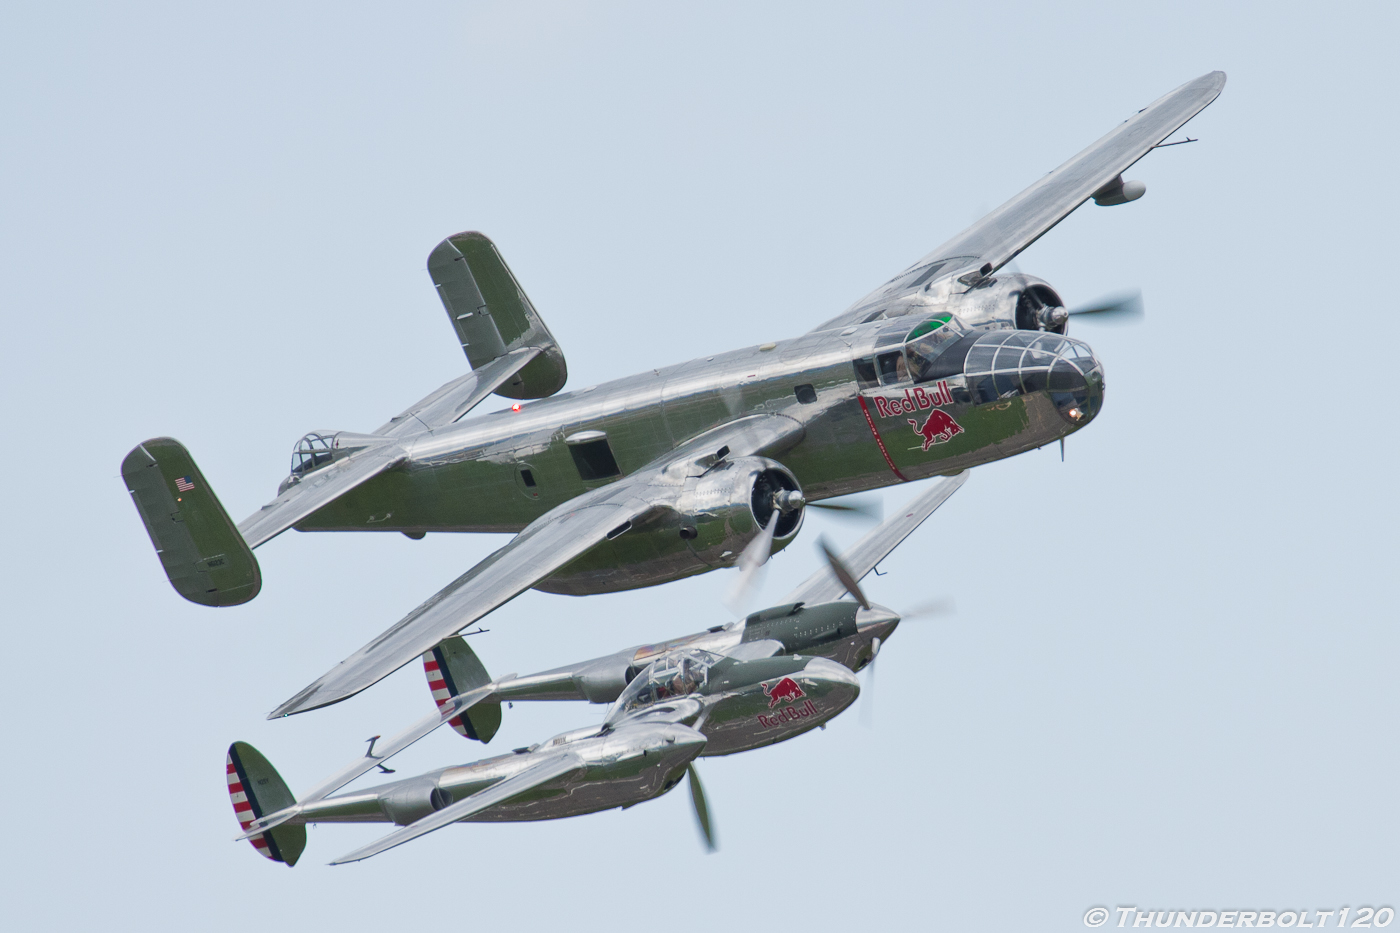 B-25J and P-38